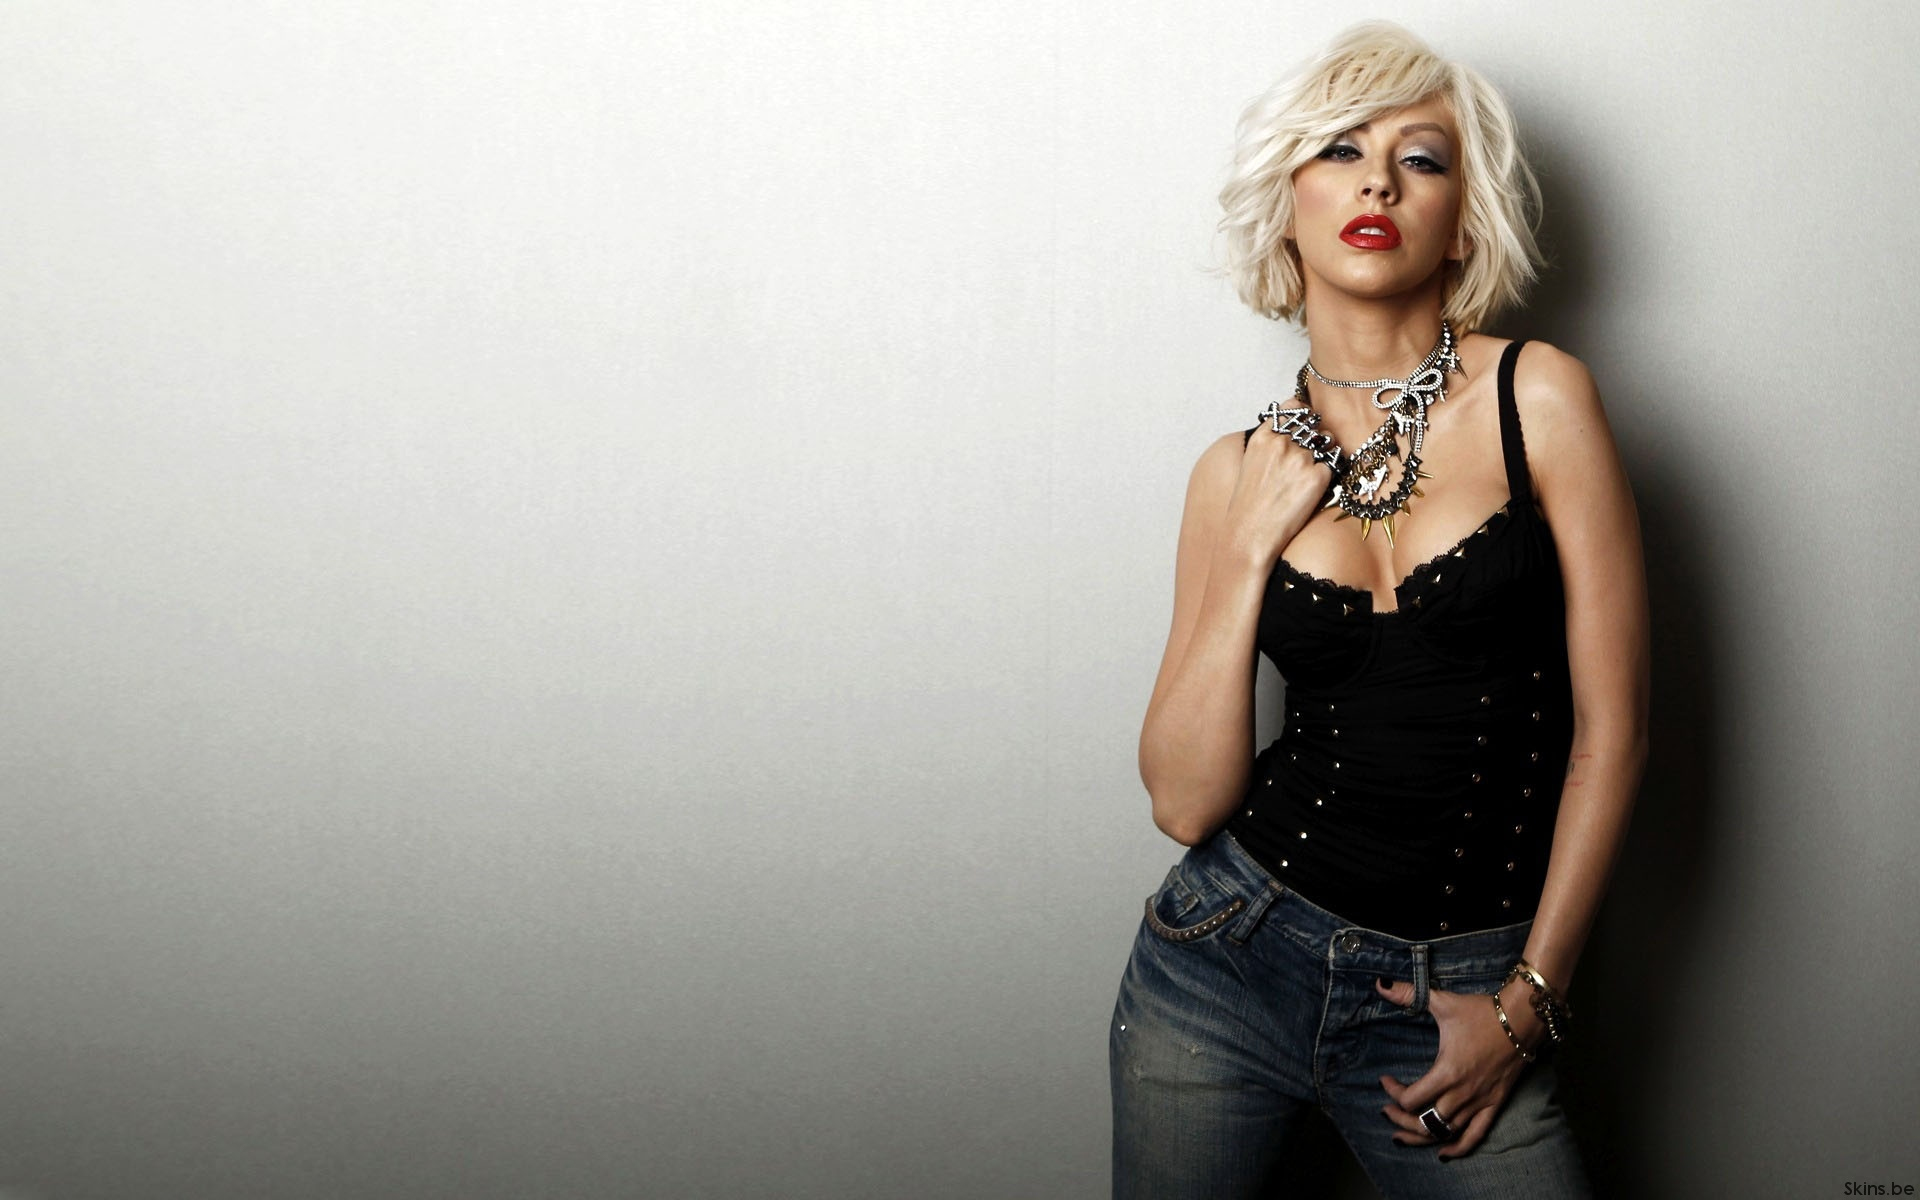 Wallpaper of Christina Aguilera 1920x1200